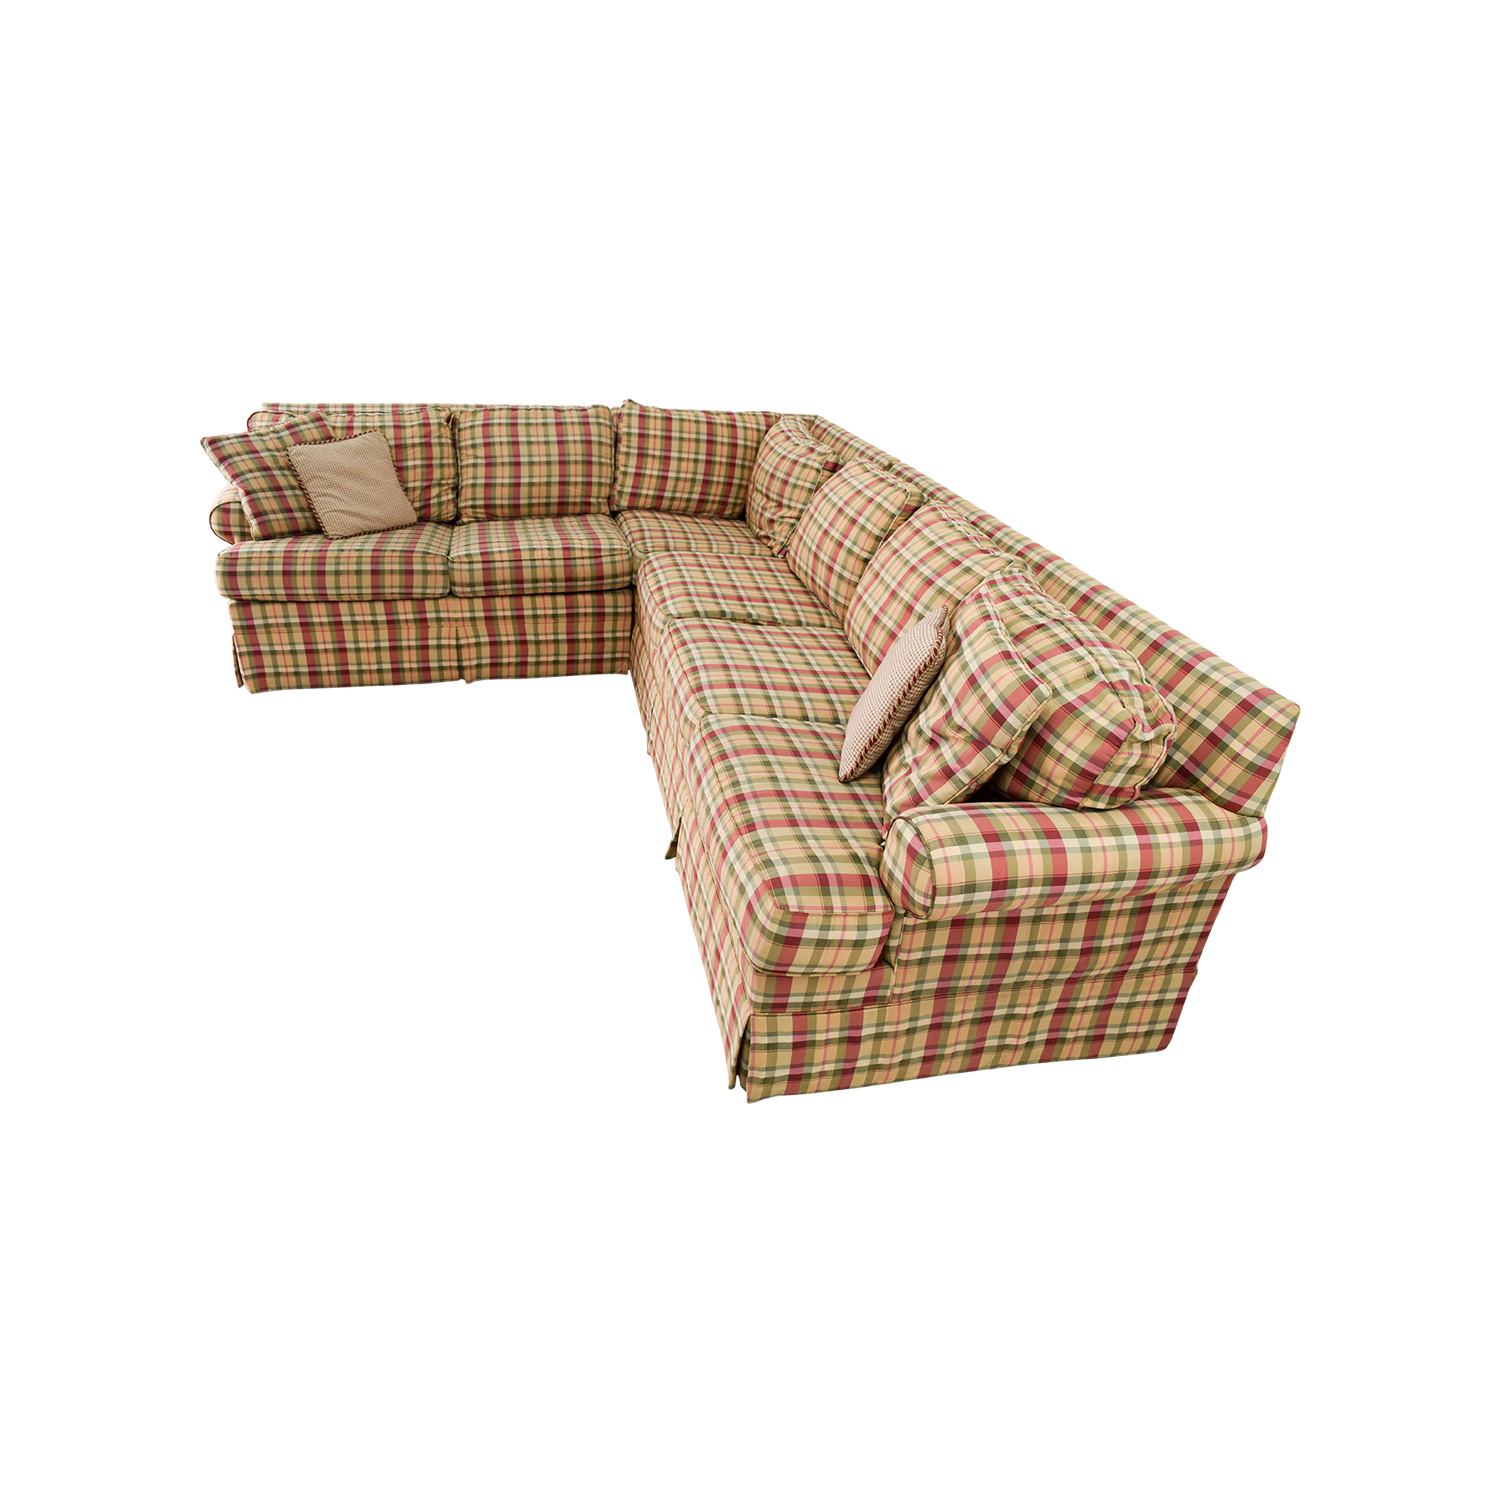 90 Off Ethan Allen Ethan Allen Retreat Roll Arm Plaid